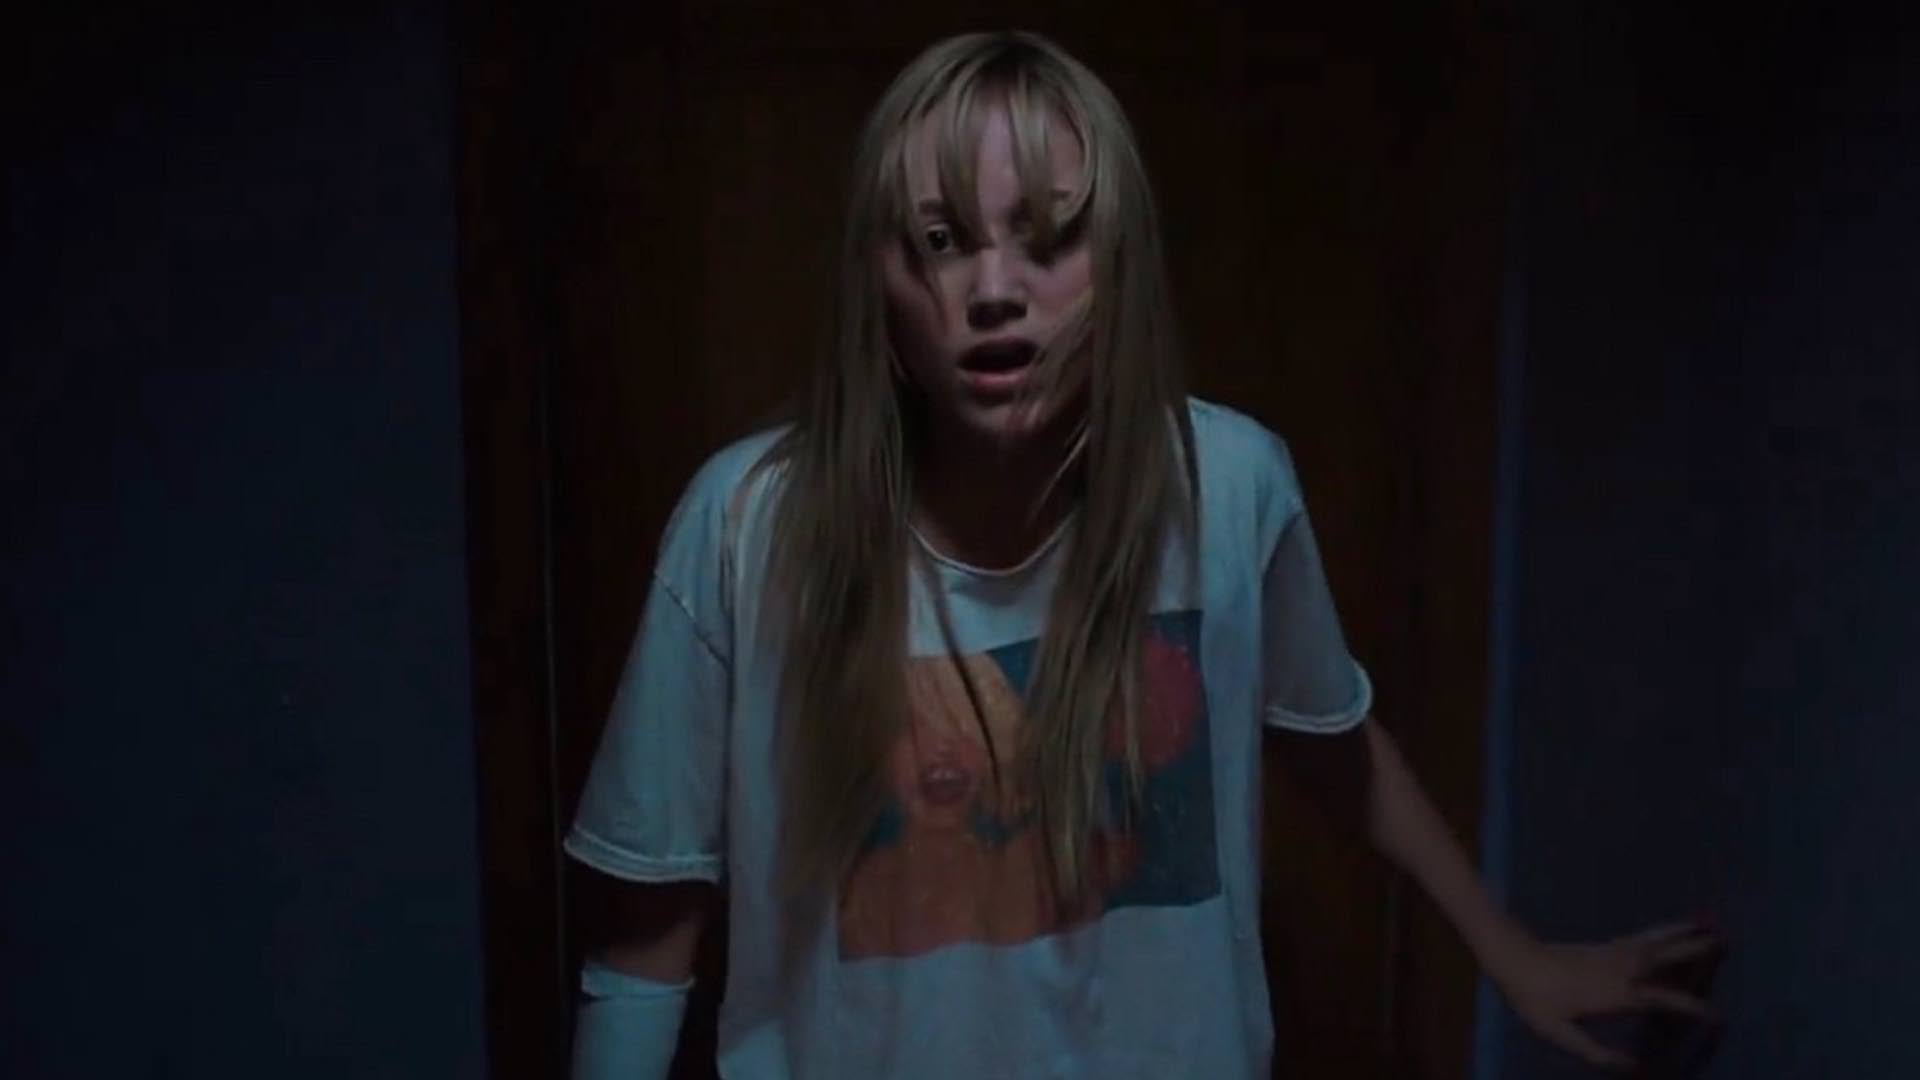 Micah Monroe in It Follows is terrified